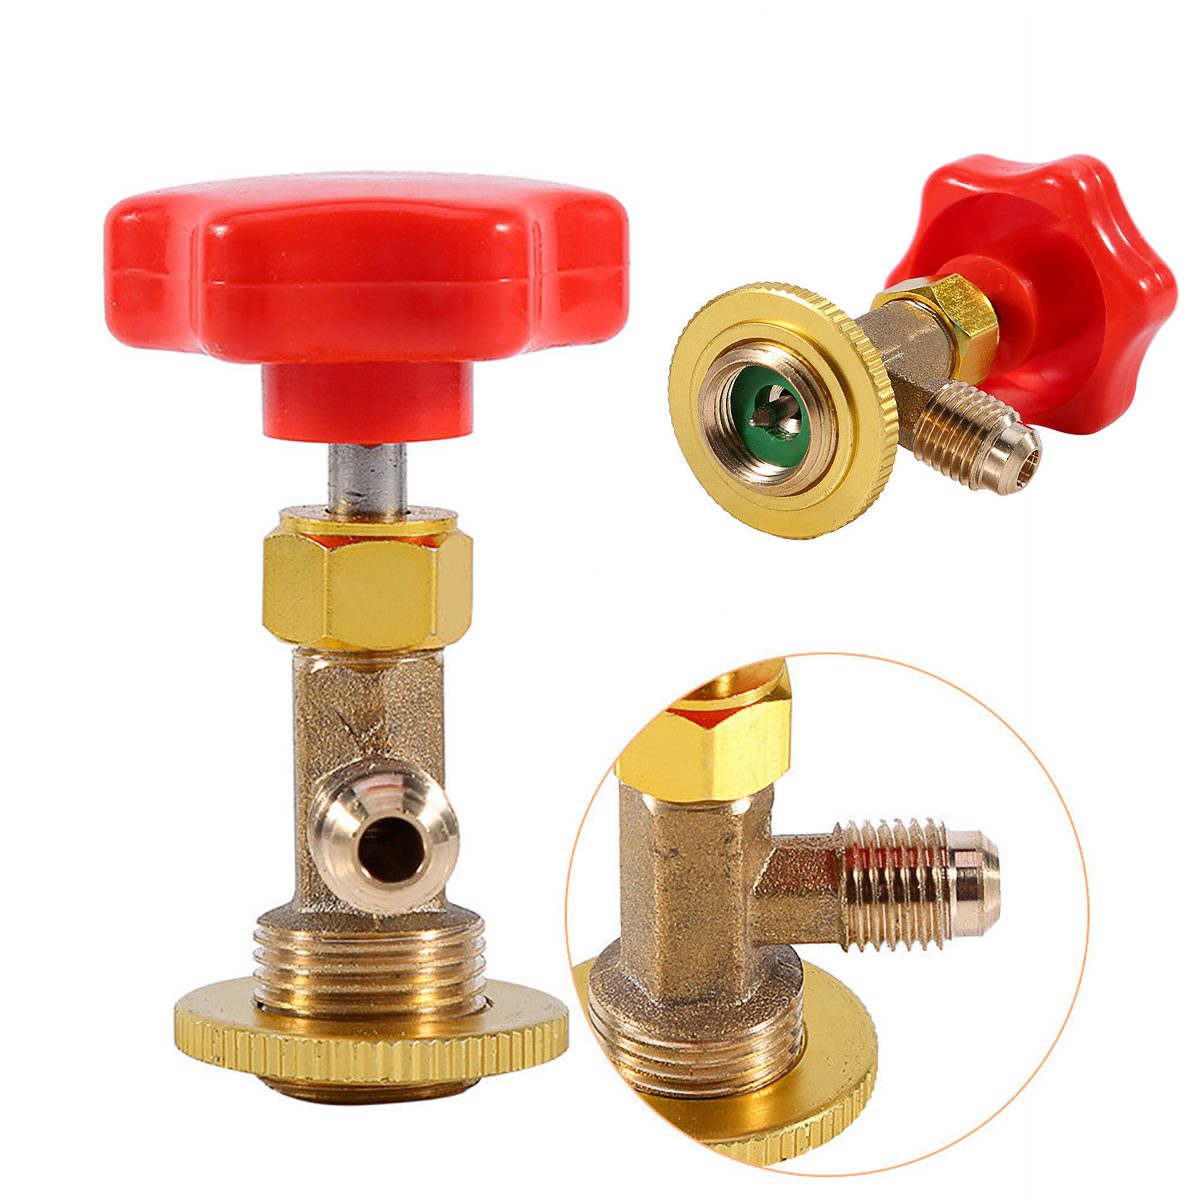 M14/1/4 SAE Valve Bottle Opener Mayitr Car Styling Auto R134a Air Conditioning Refrigerant AC Bottle Can Tap Tool With Red Cap hs 1221 hs 1222 r410a refrigeration charging adapter refrigerant retention control valve air conditioning charging valve